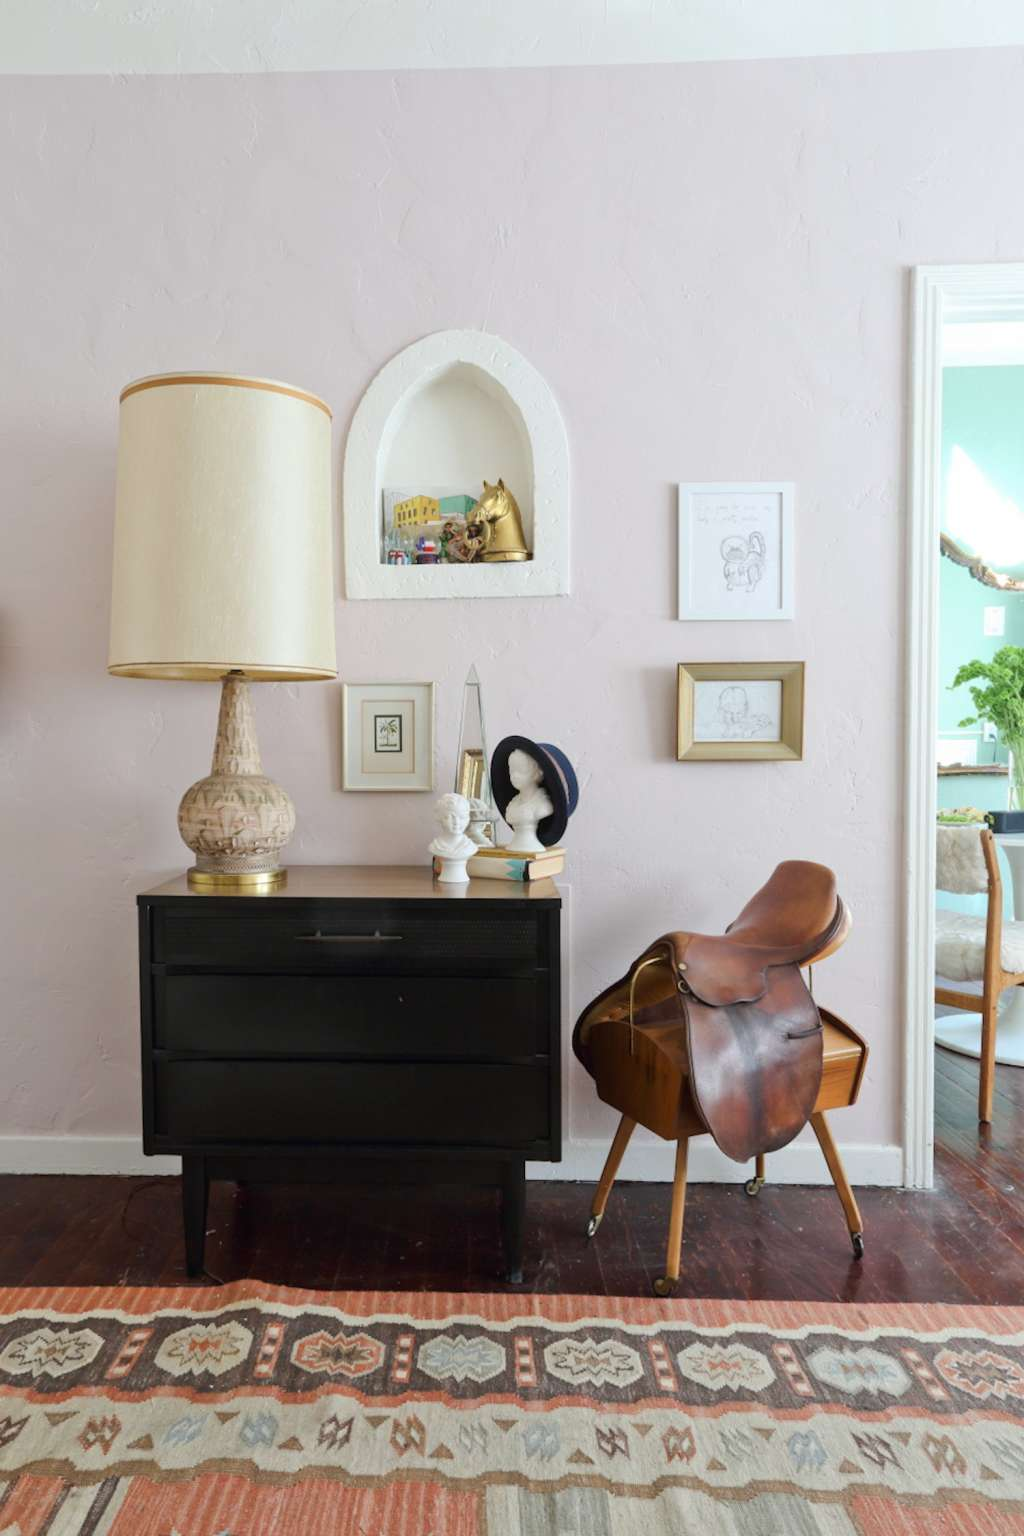 3 Tiny Tweaks That Will Make Your Home's Lighting Better